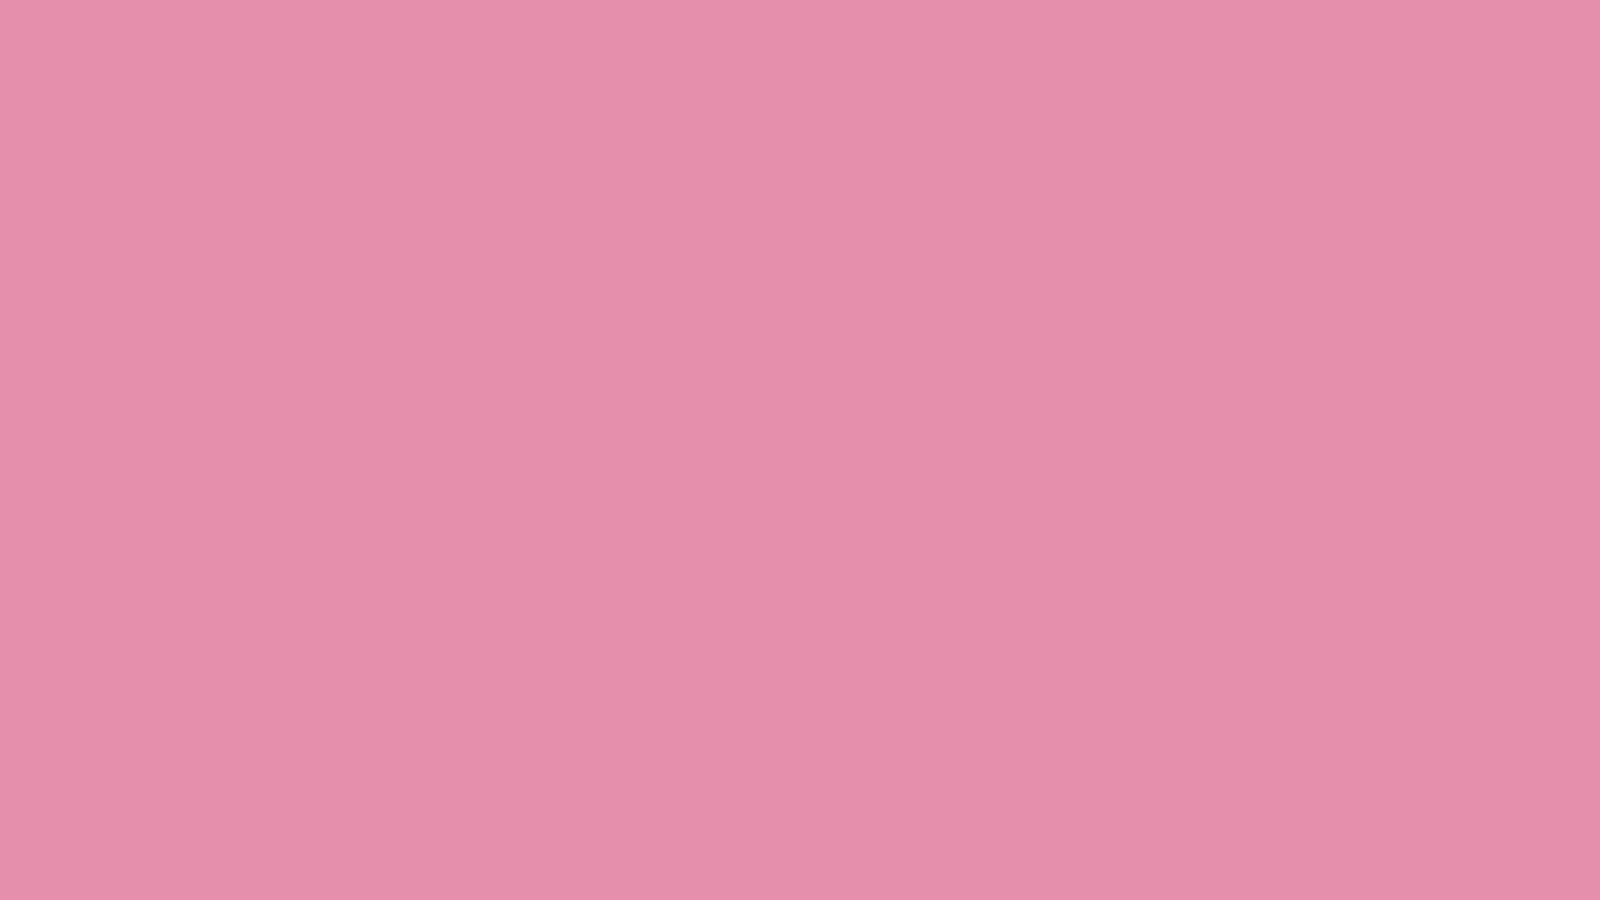 1600x900 Charm Pink Solid Color Background